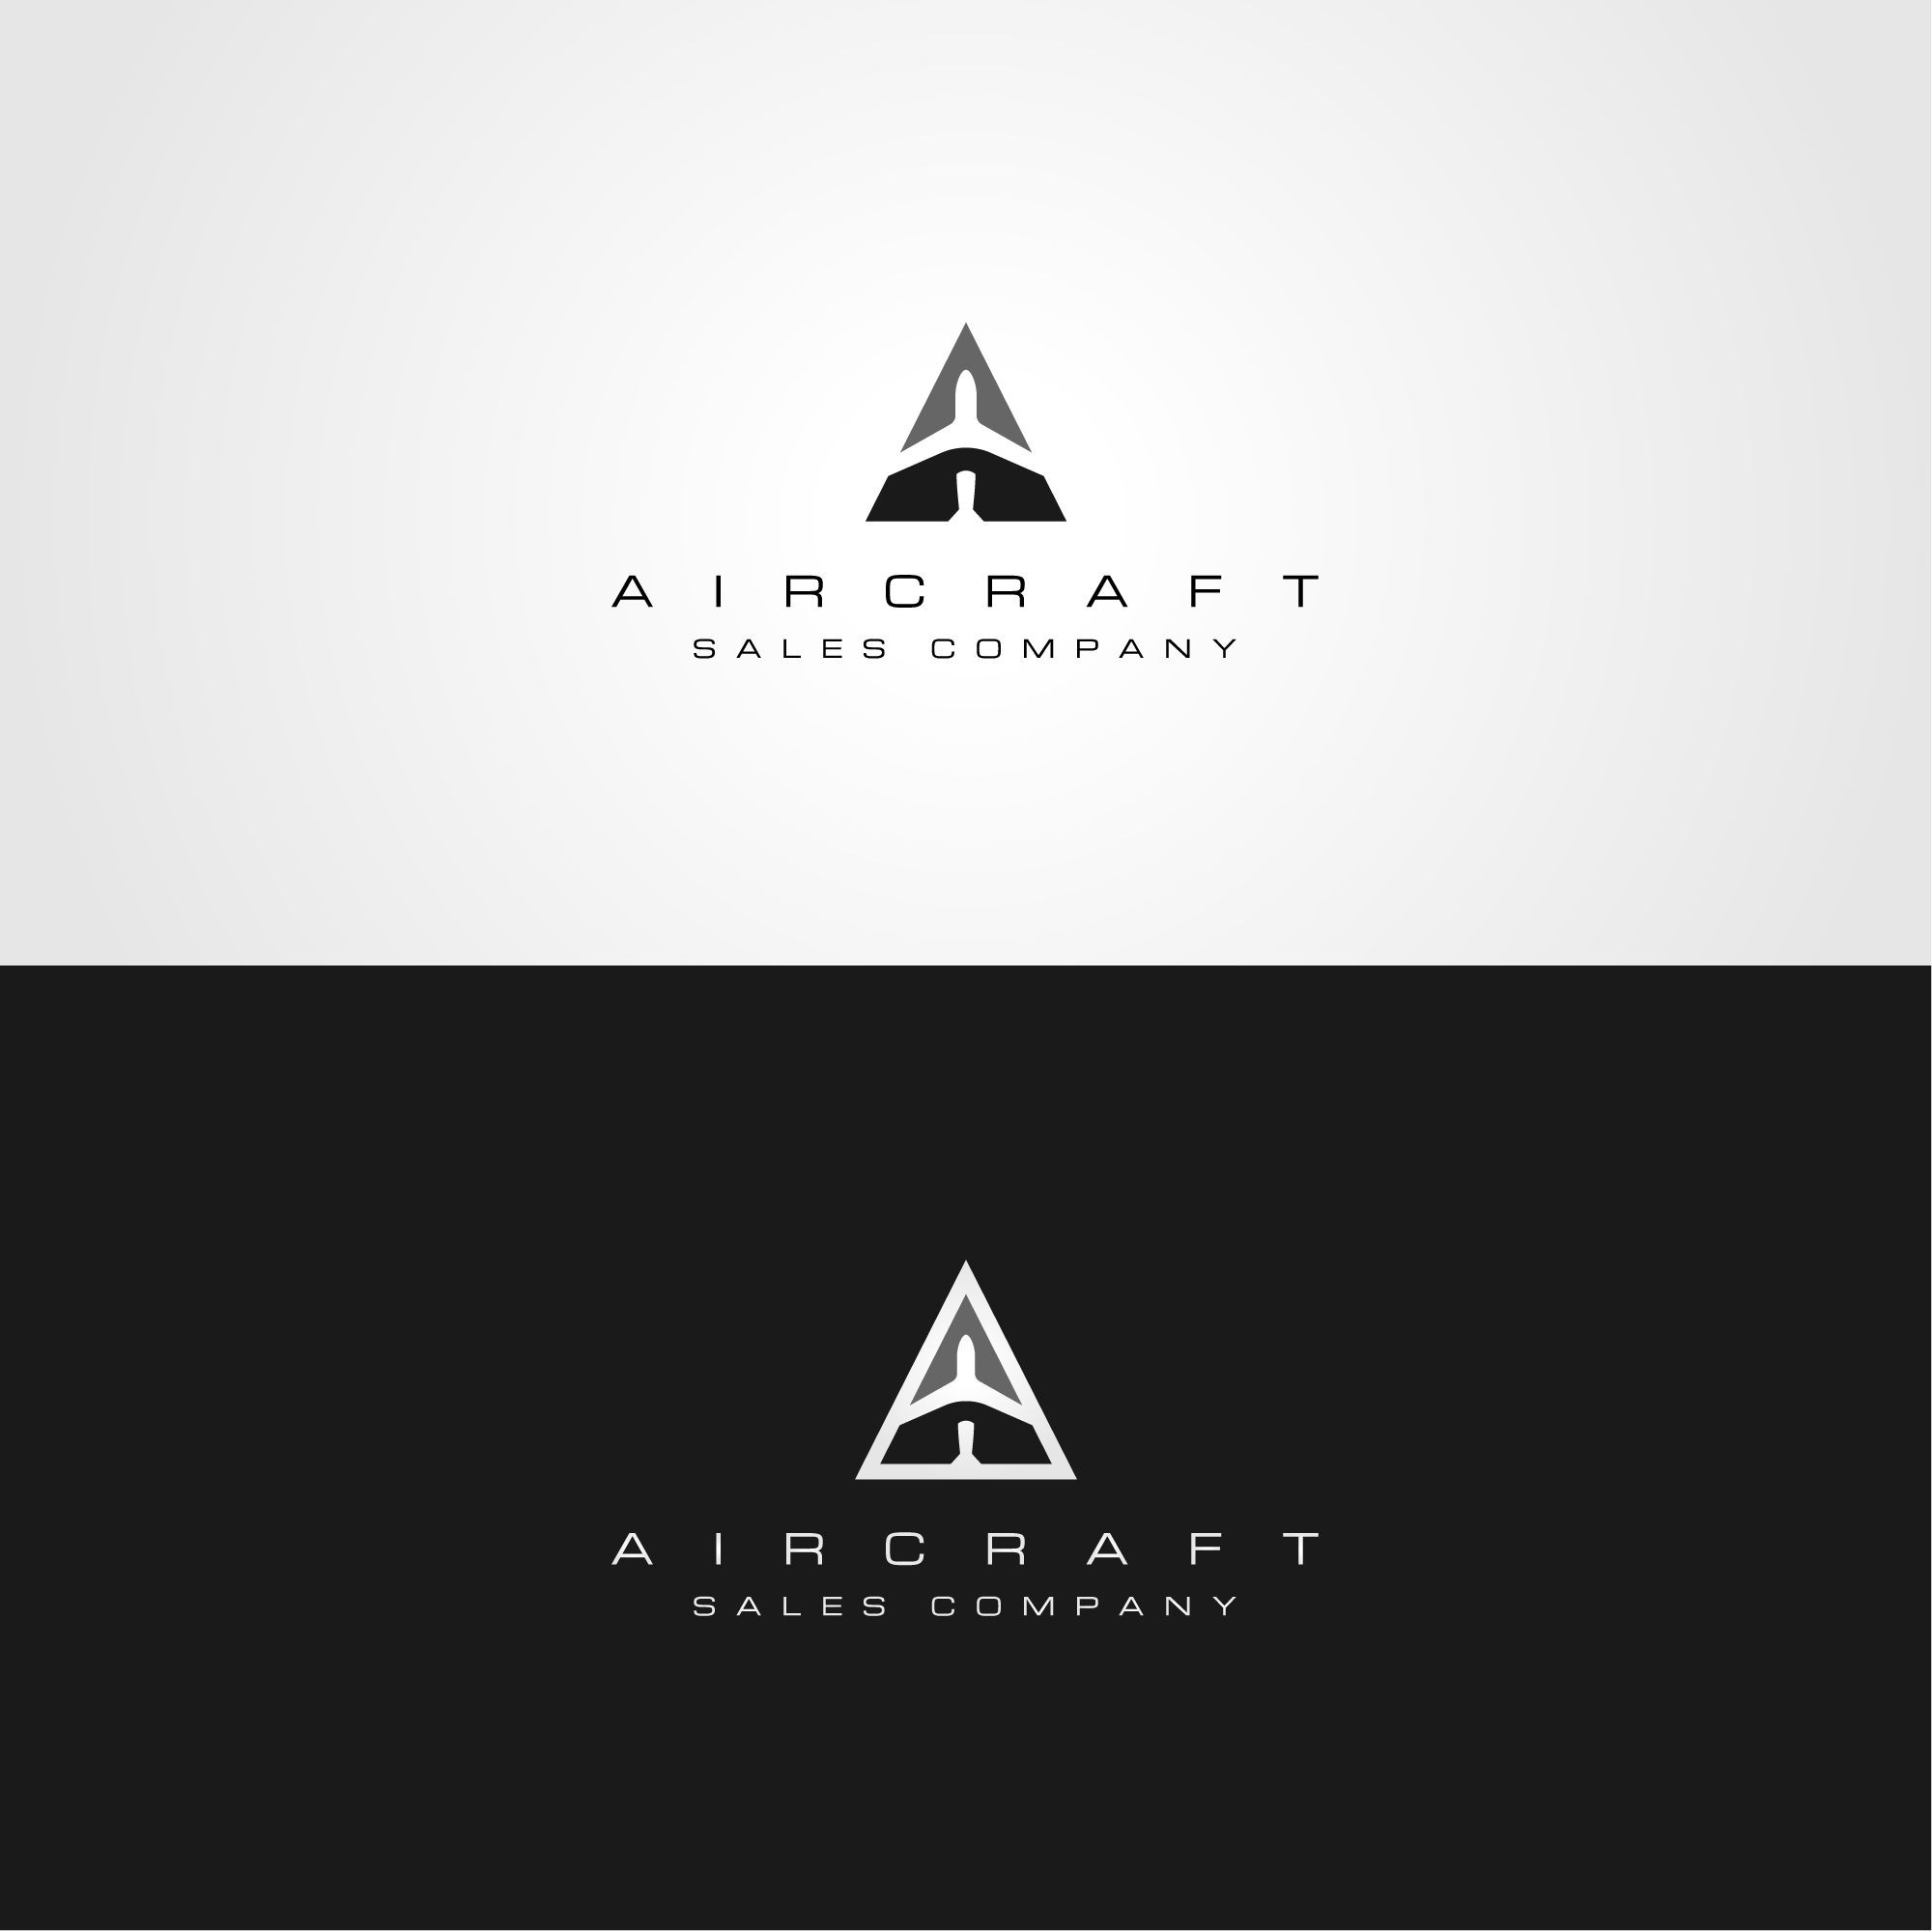 New Aircraft Sales Company needs hip and awsome logo! Thank you!